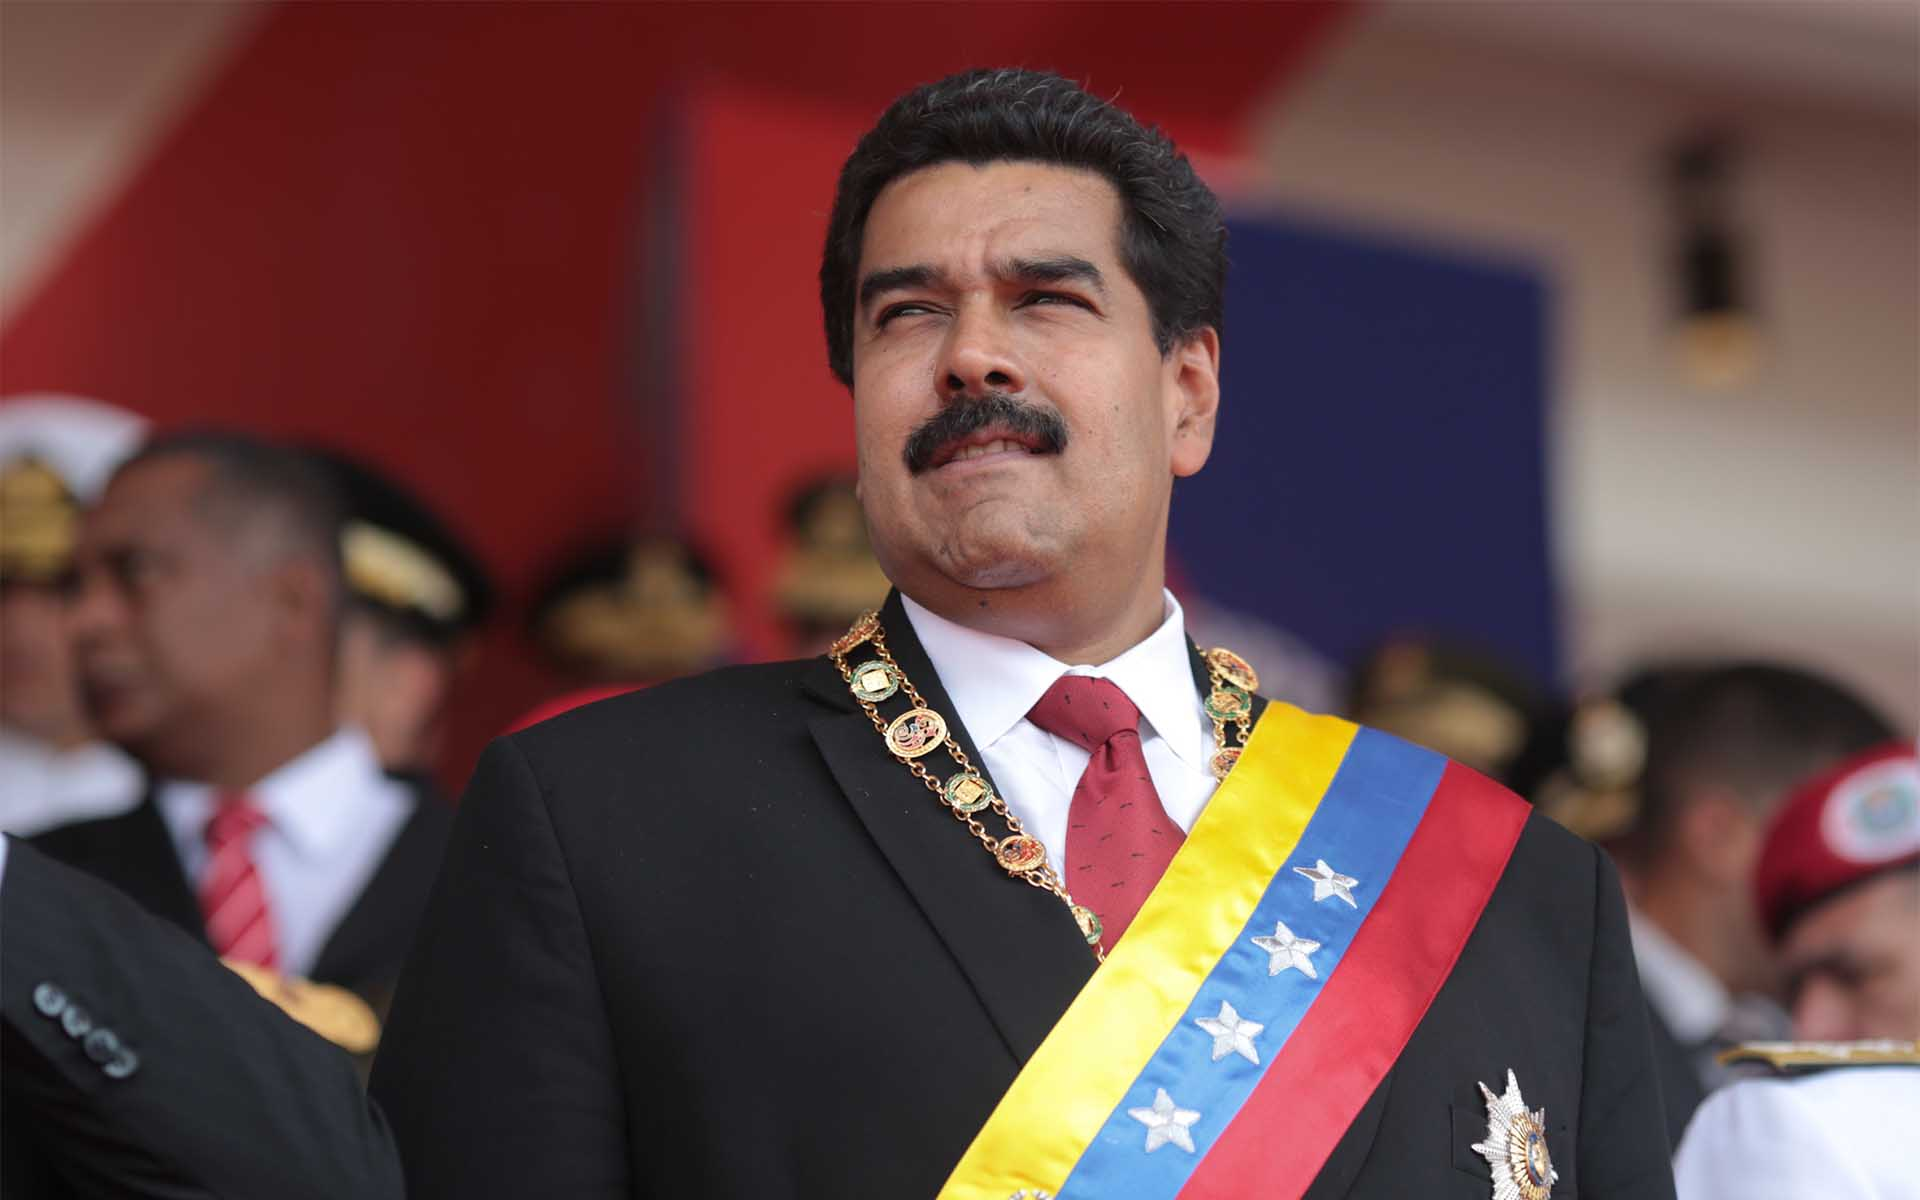 First Public Offer of Venezuelan Cryptocurrency Begins